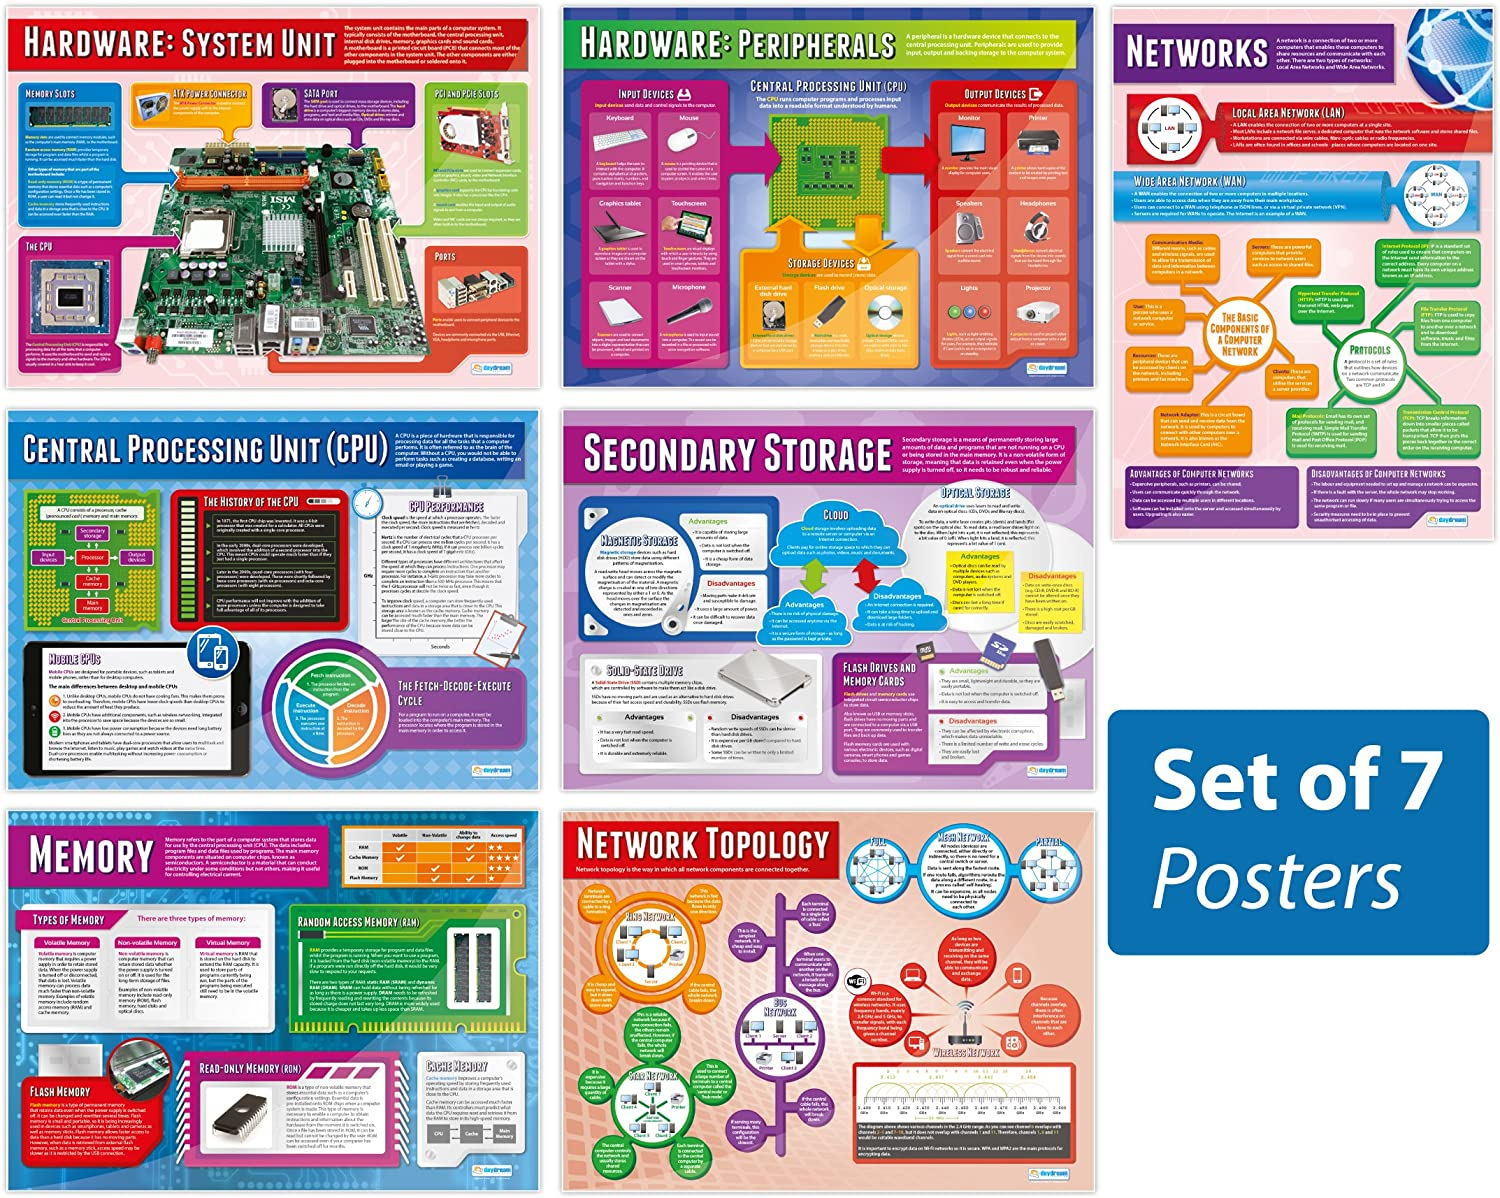 Computer Systems and NEW Networks depot Posters Scie Set 7 of -